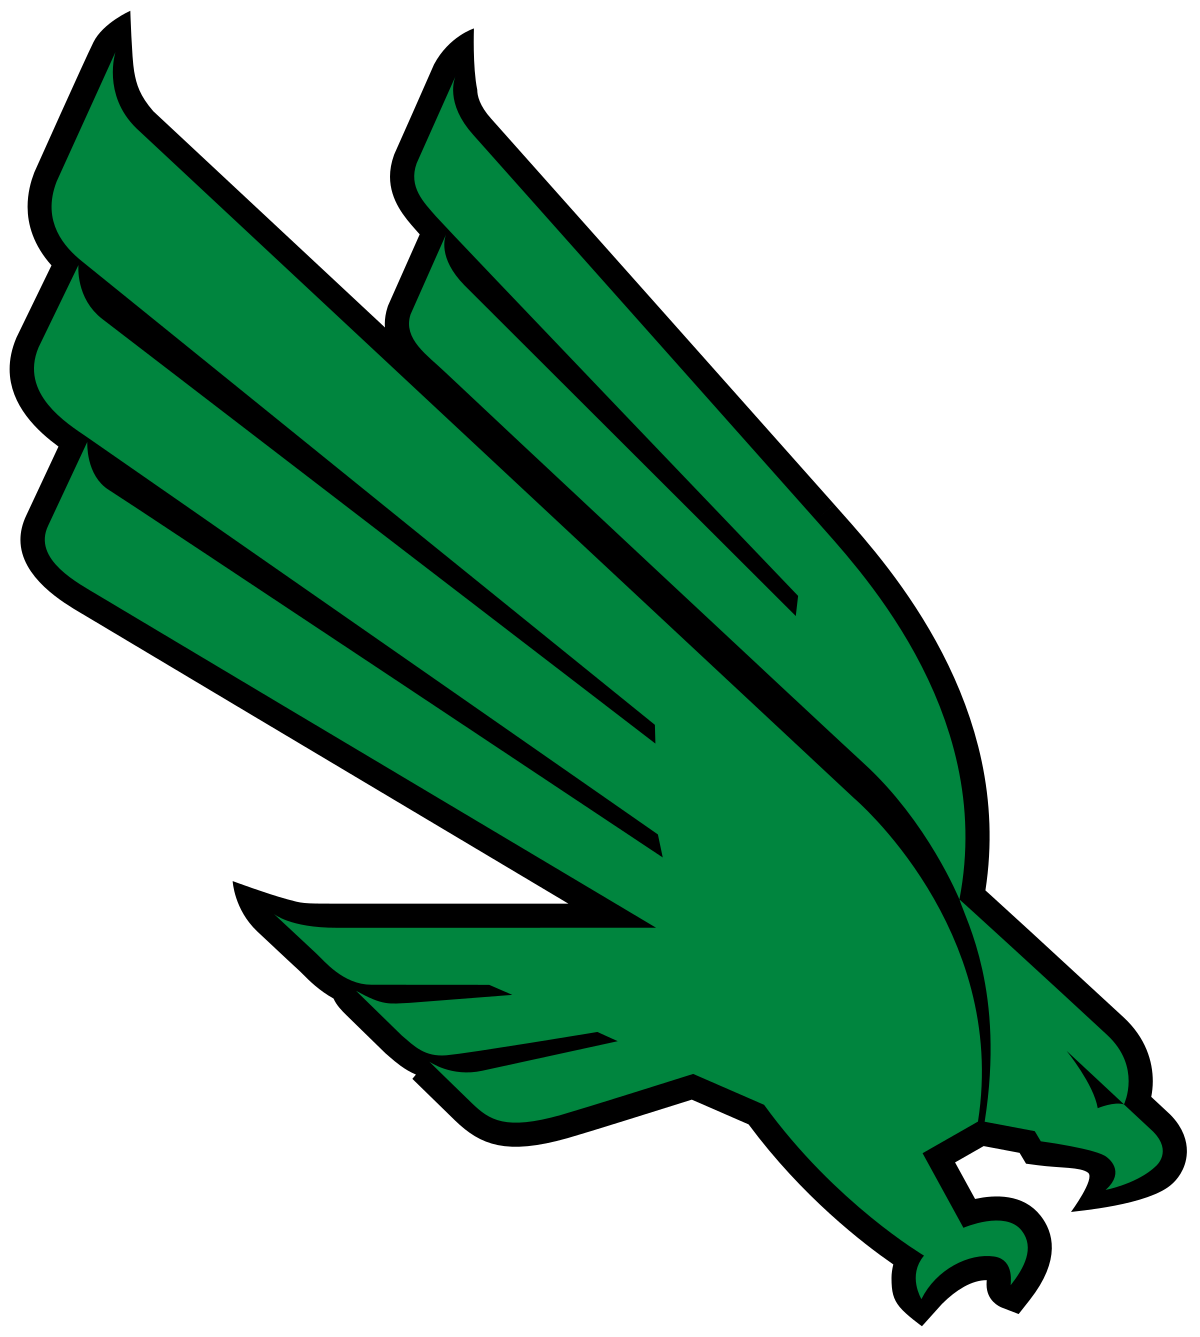 North texas mean green. Wing clipart track and field